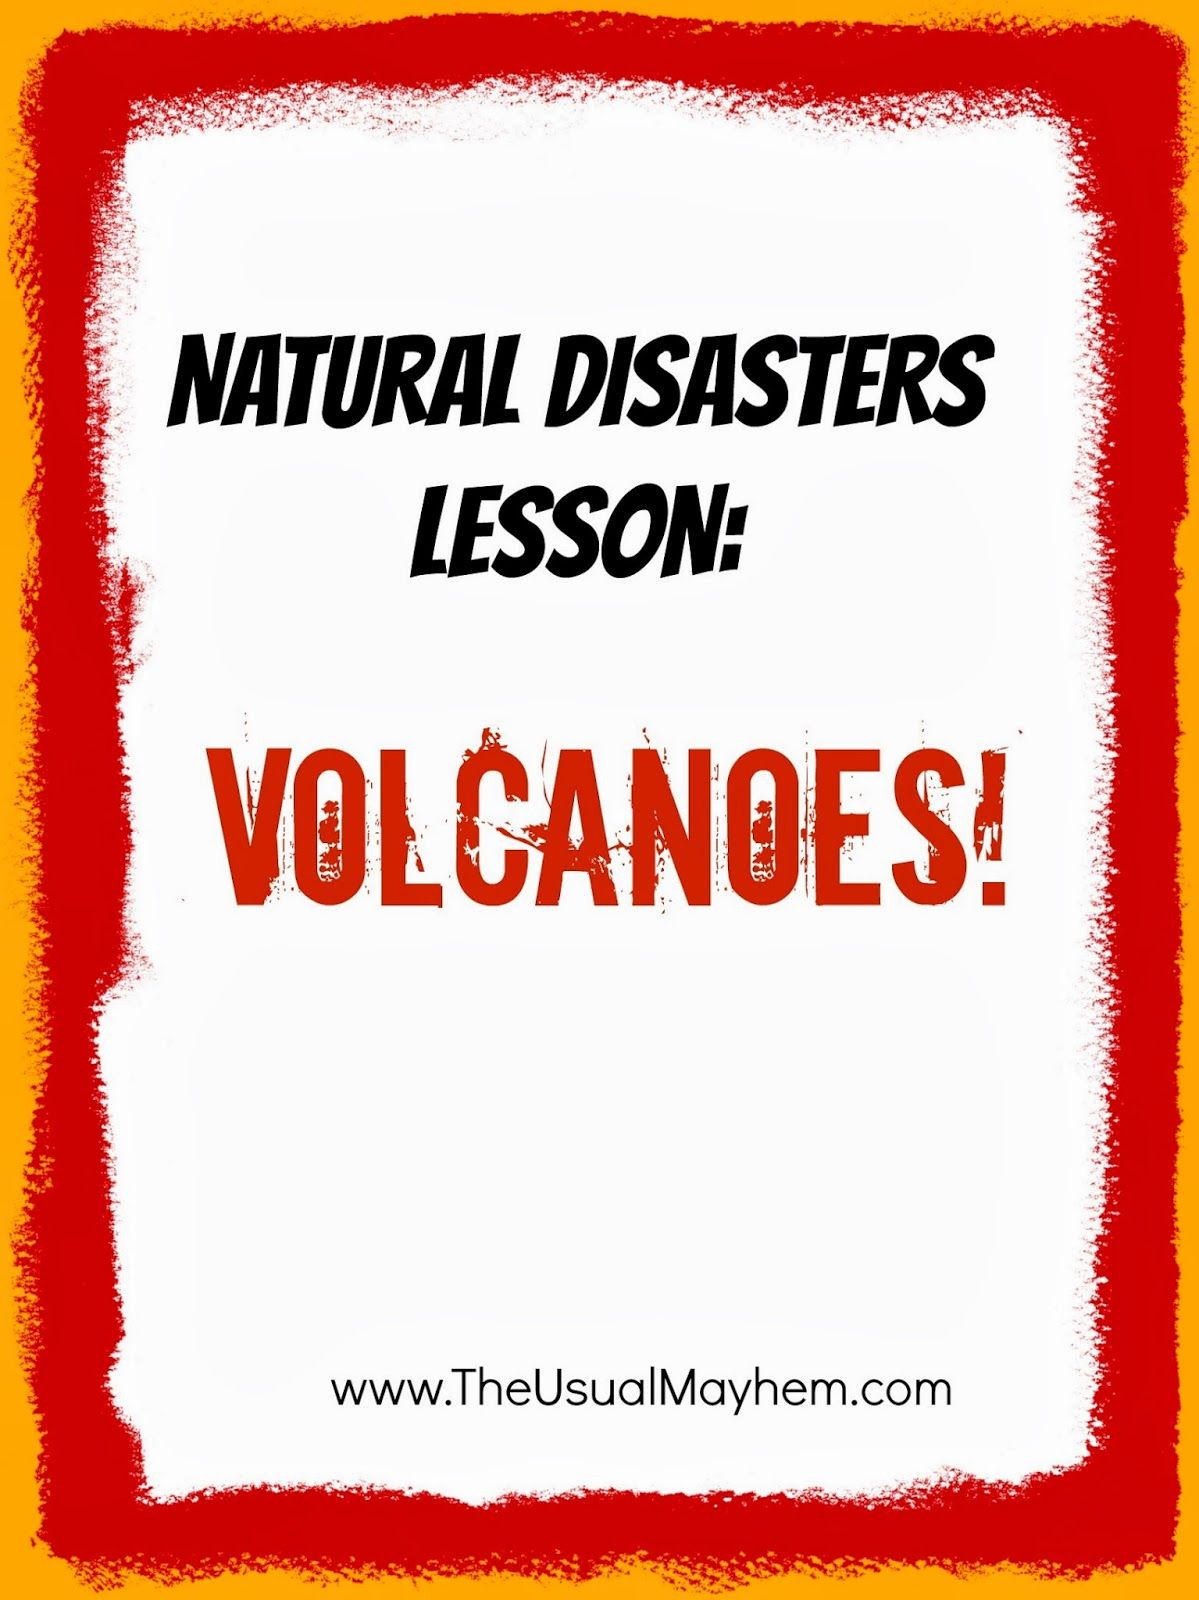 A Middle School Natural Disaster Lesson On Volcanoes